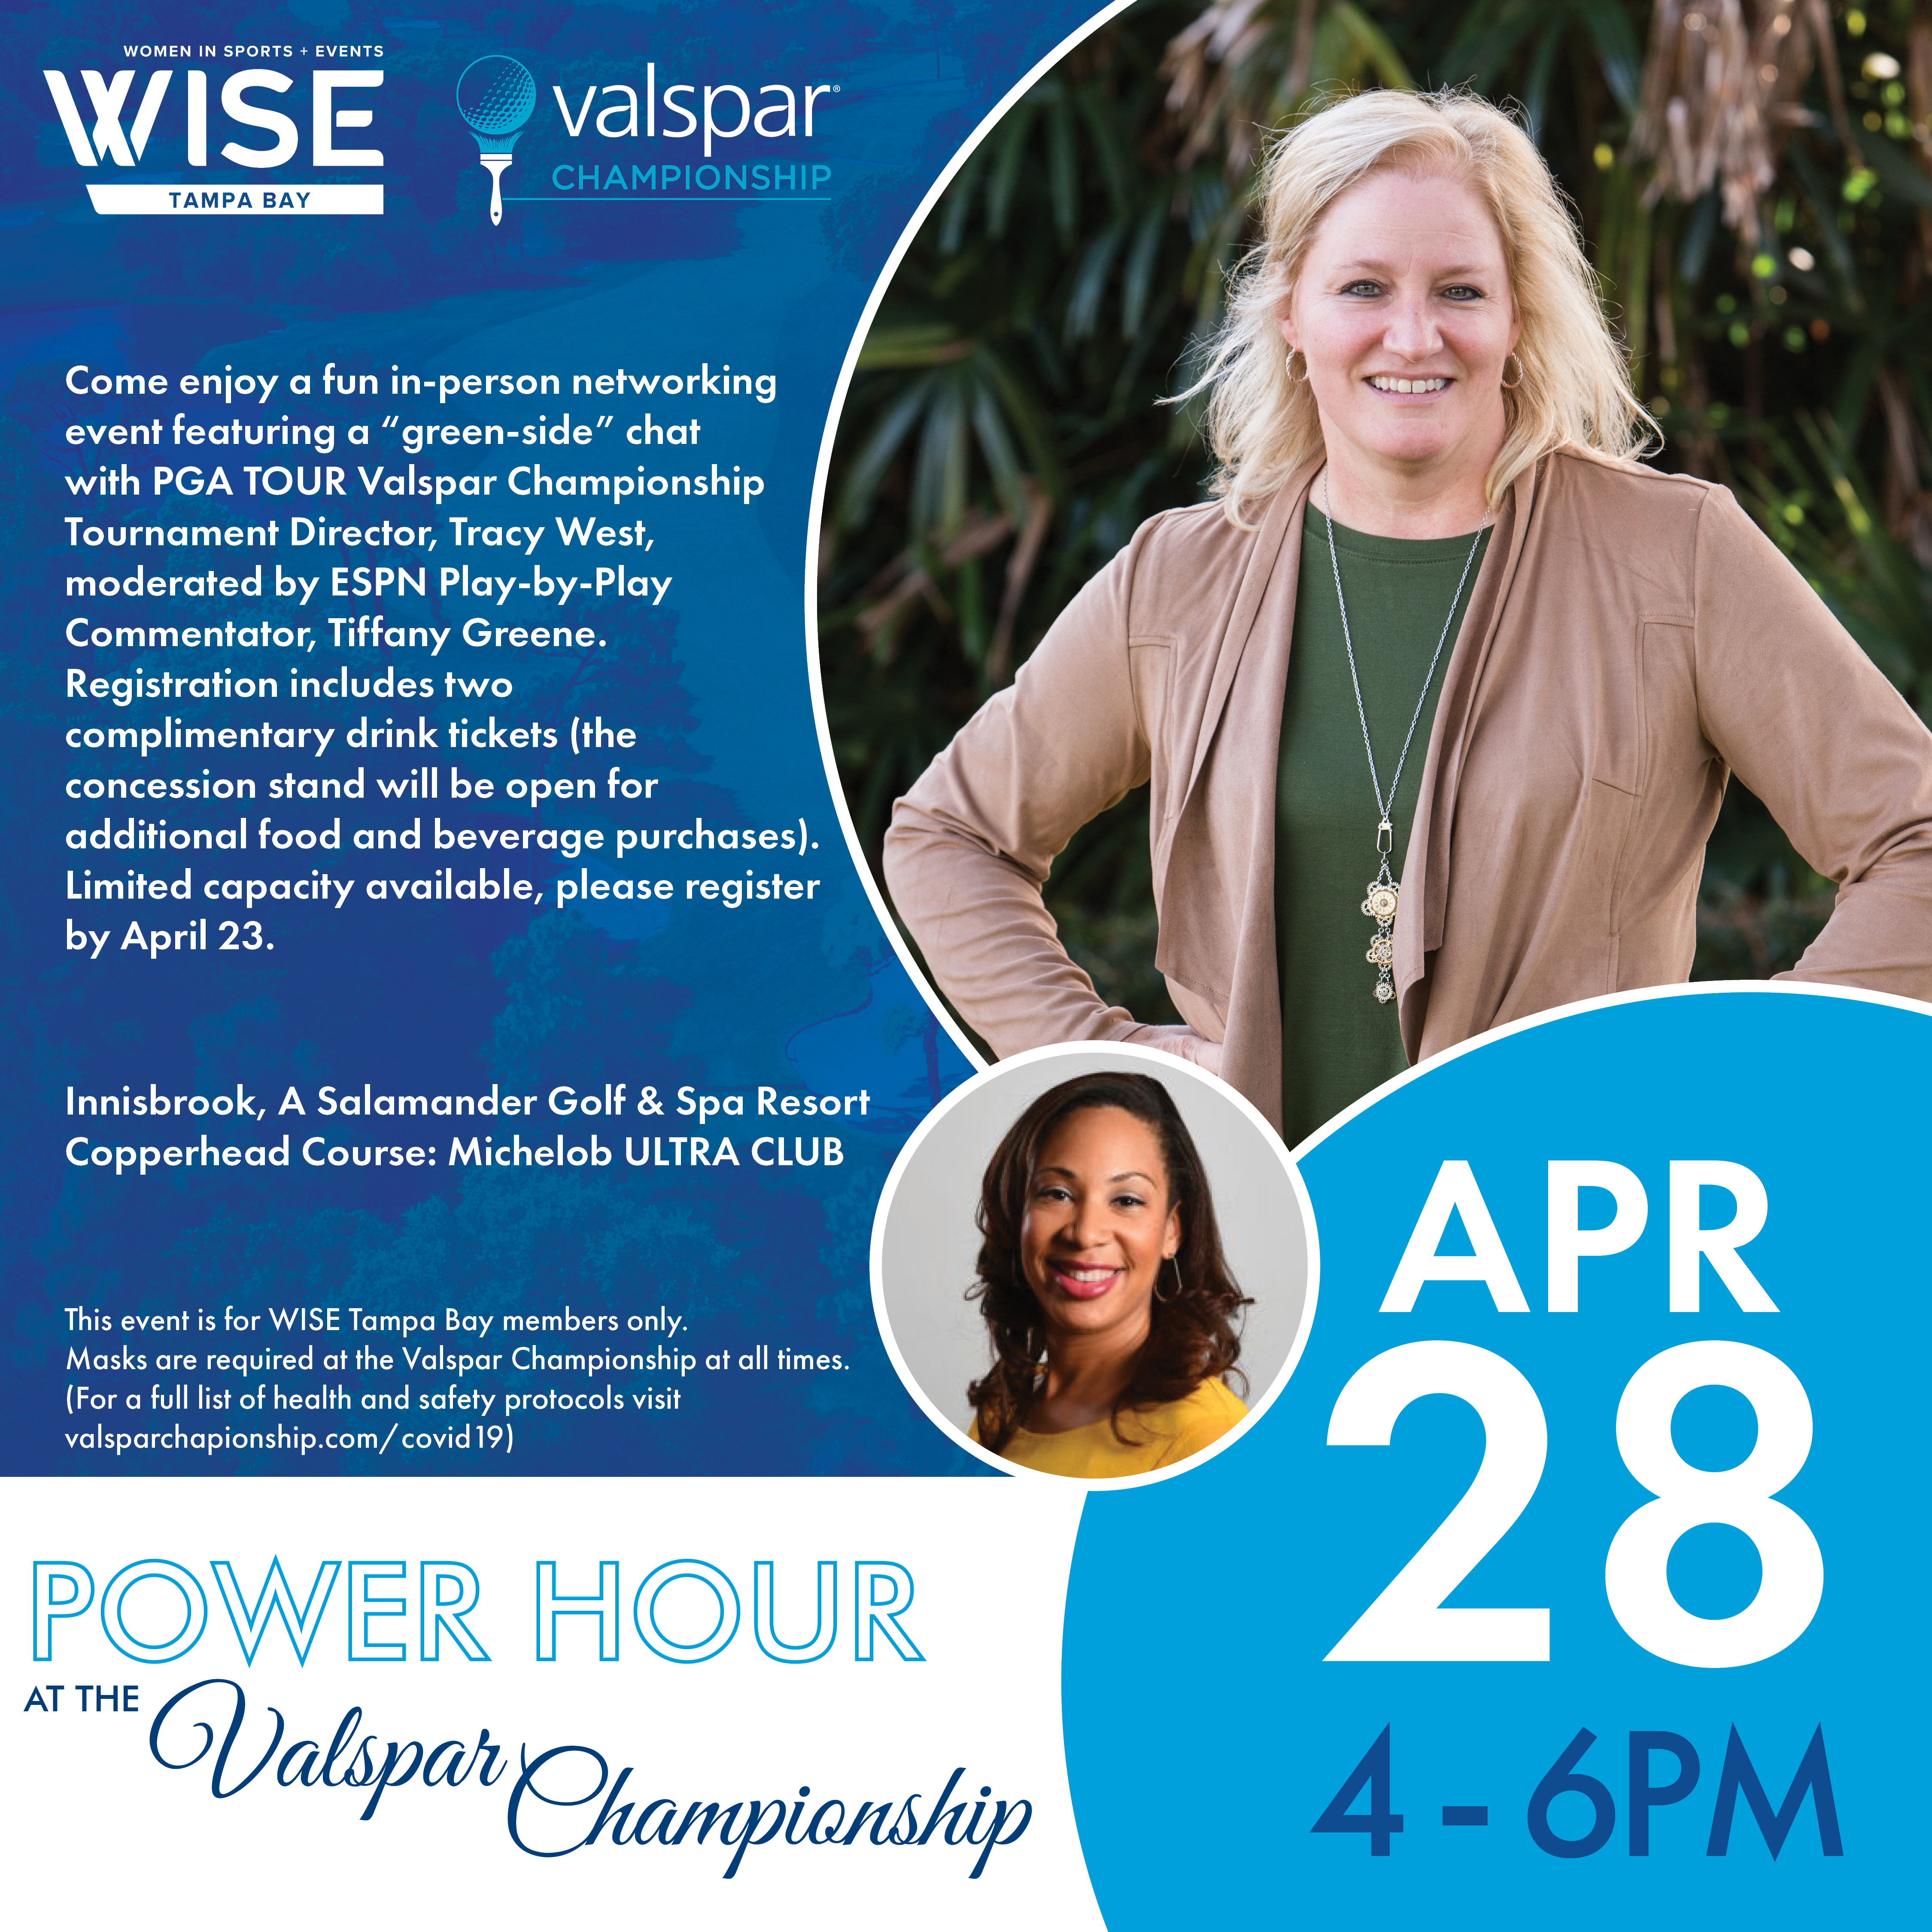 Image of WISE Tampa Bay Power Hour at the Valspar Championship